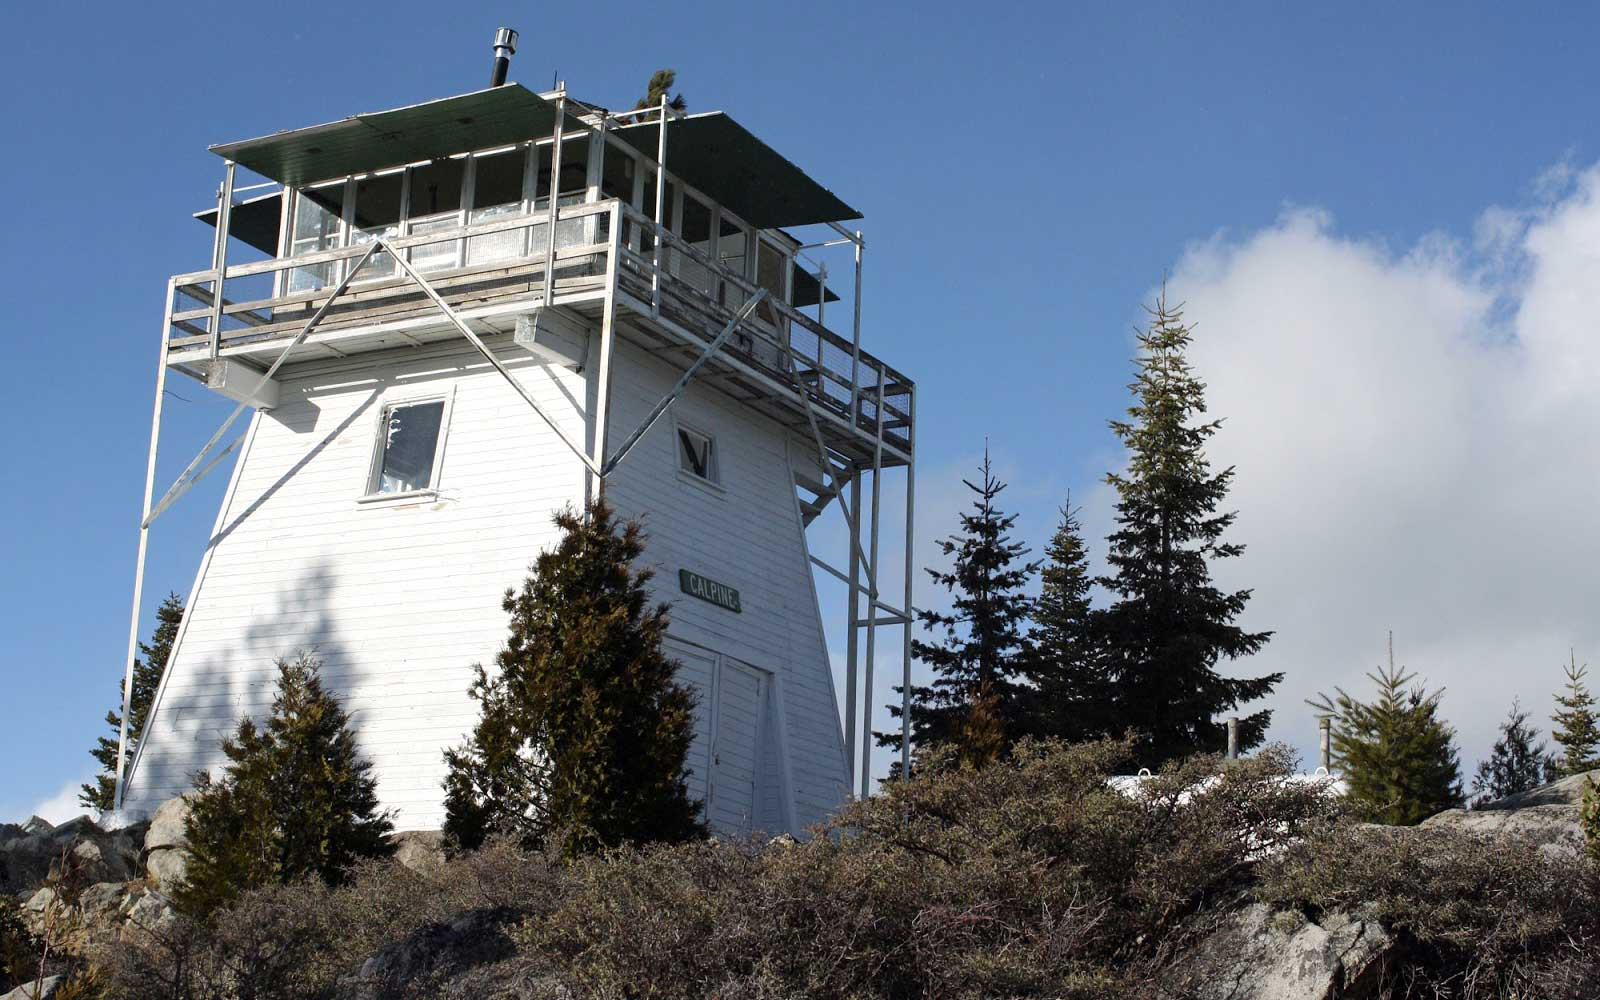 Calpine Fire Lookout in California